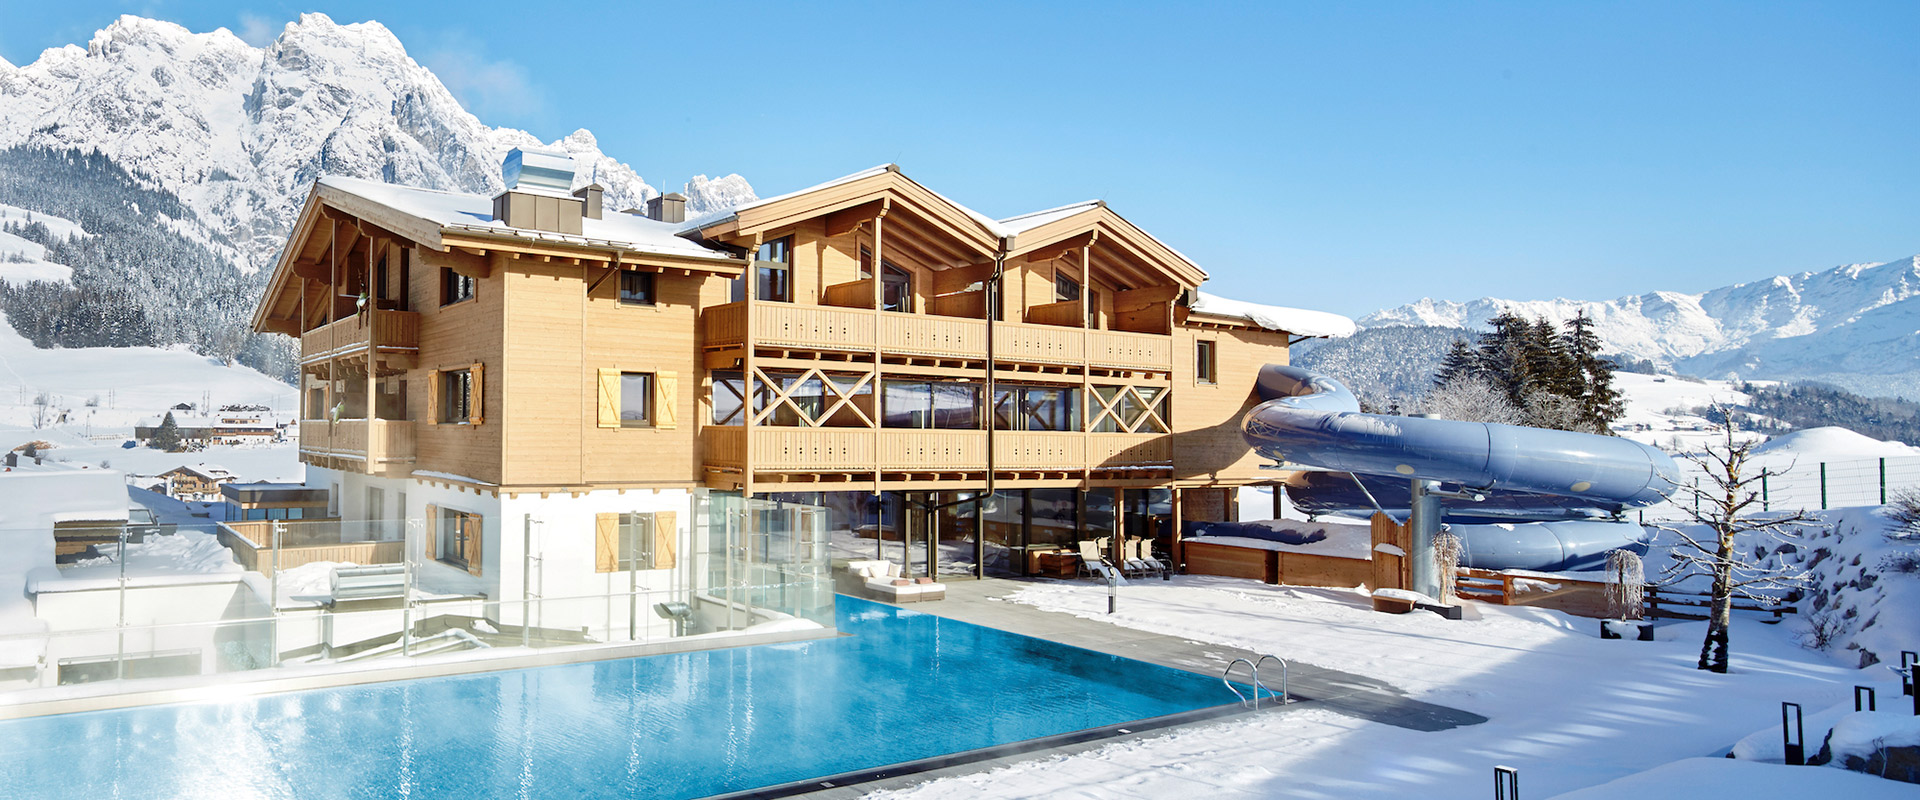 GOOD LIFE RESORT LEOGANG - die Riederalm